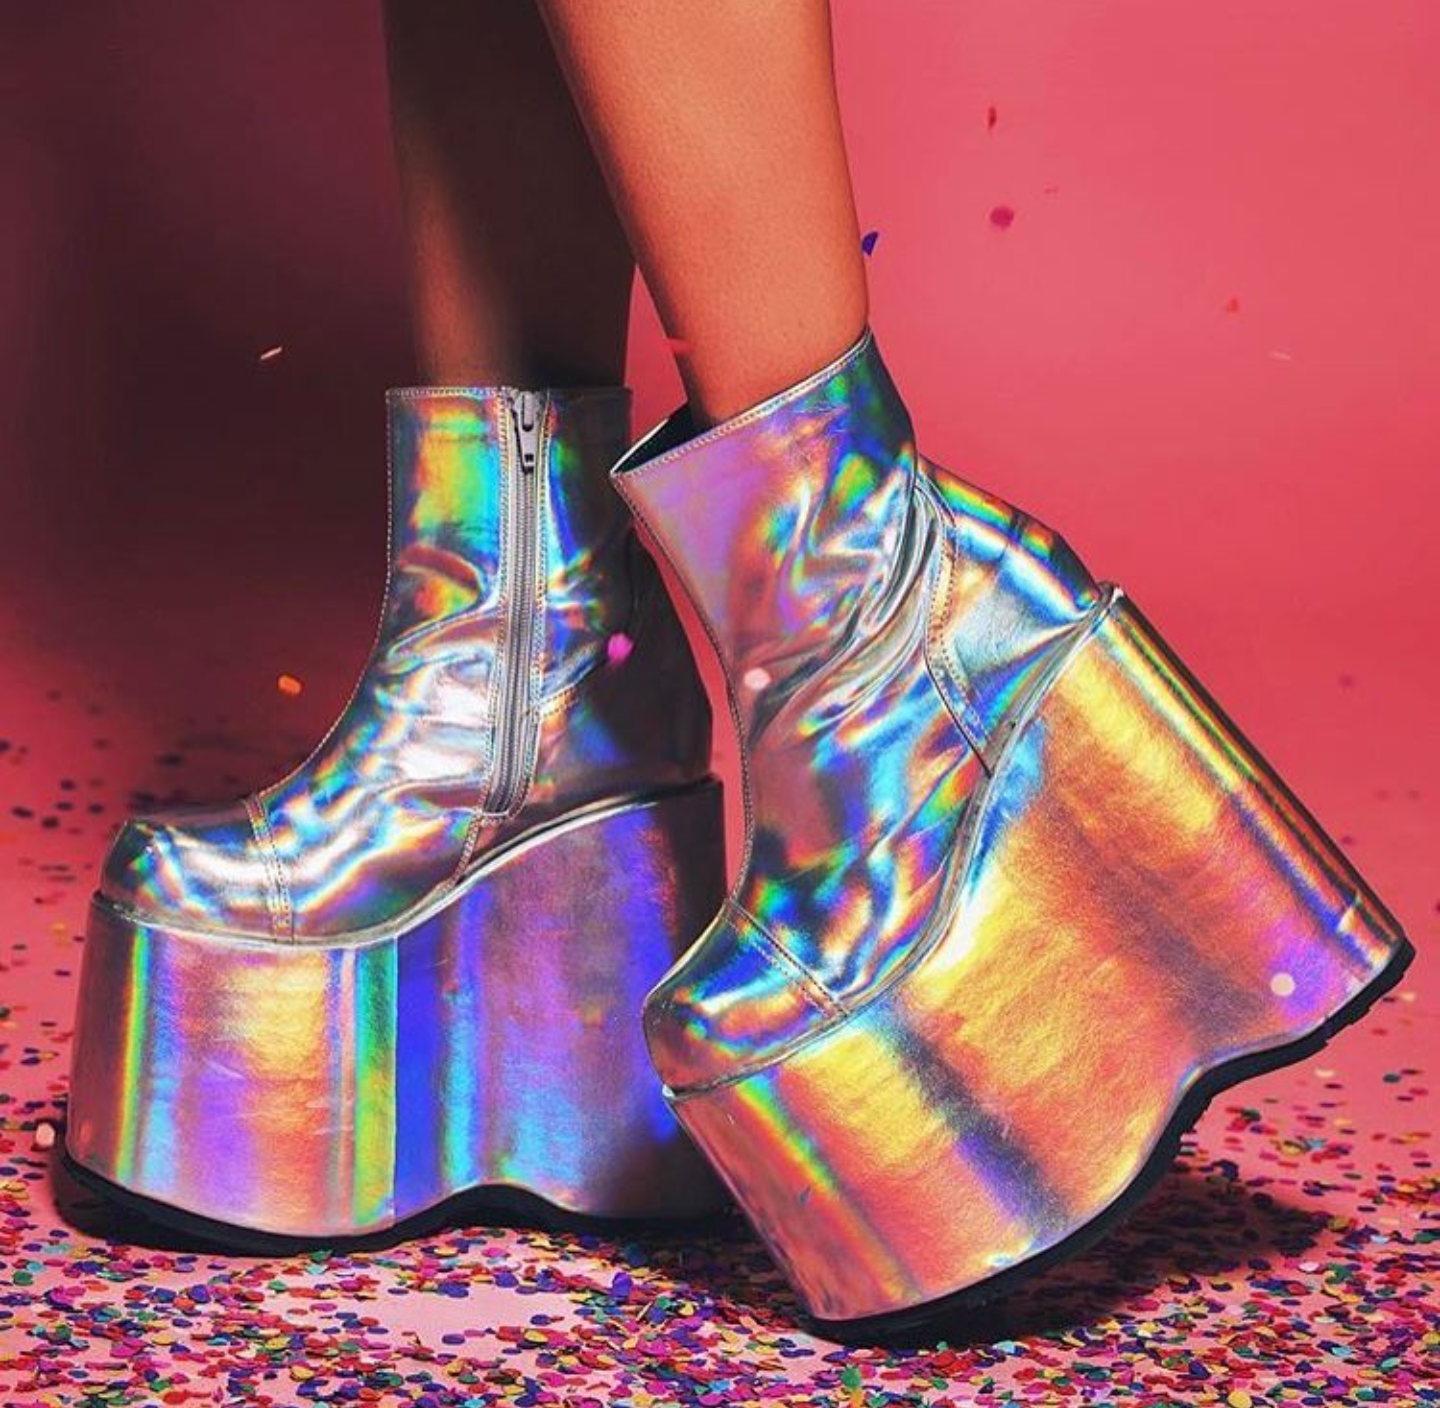 e4dcd41d029 We are OBSESSED with the SLAY-204  holographic Demonia platform boots